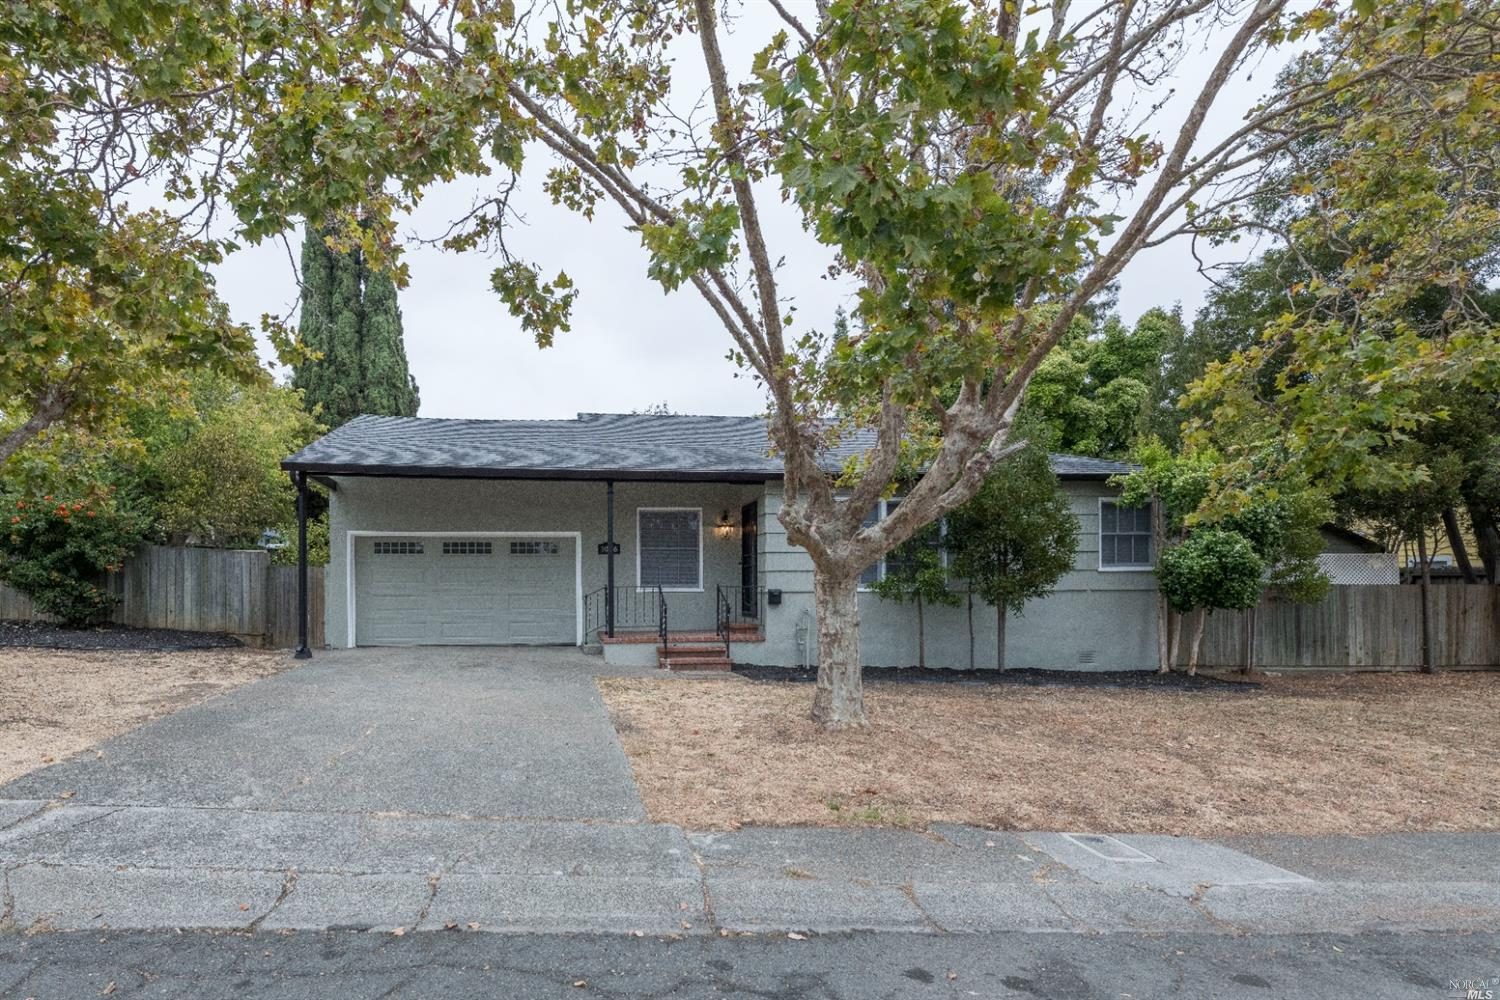 Very nice three bedroom home in an established neighborhood. This property has many upgrades and has